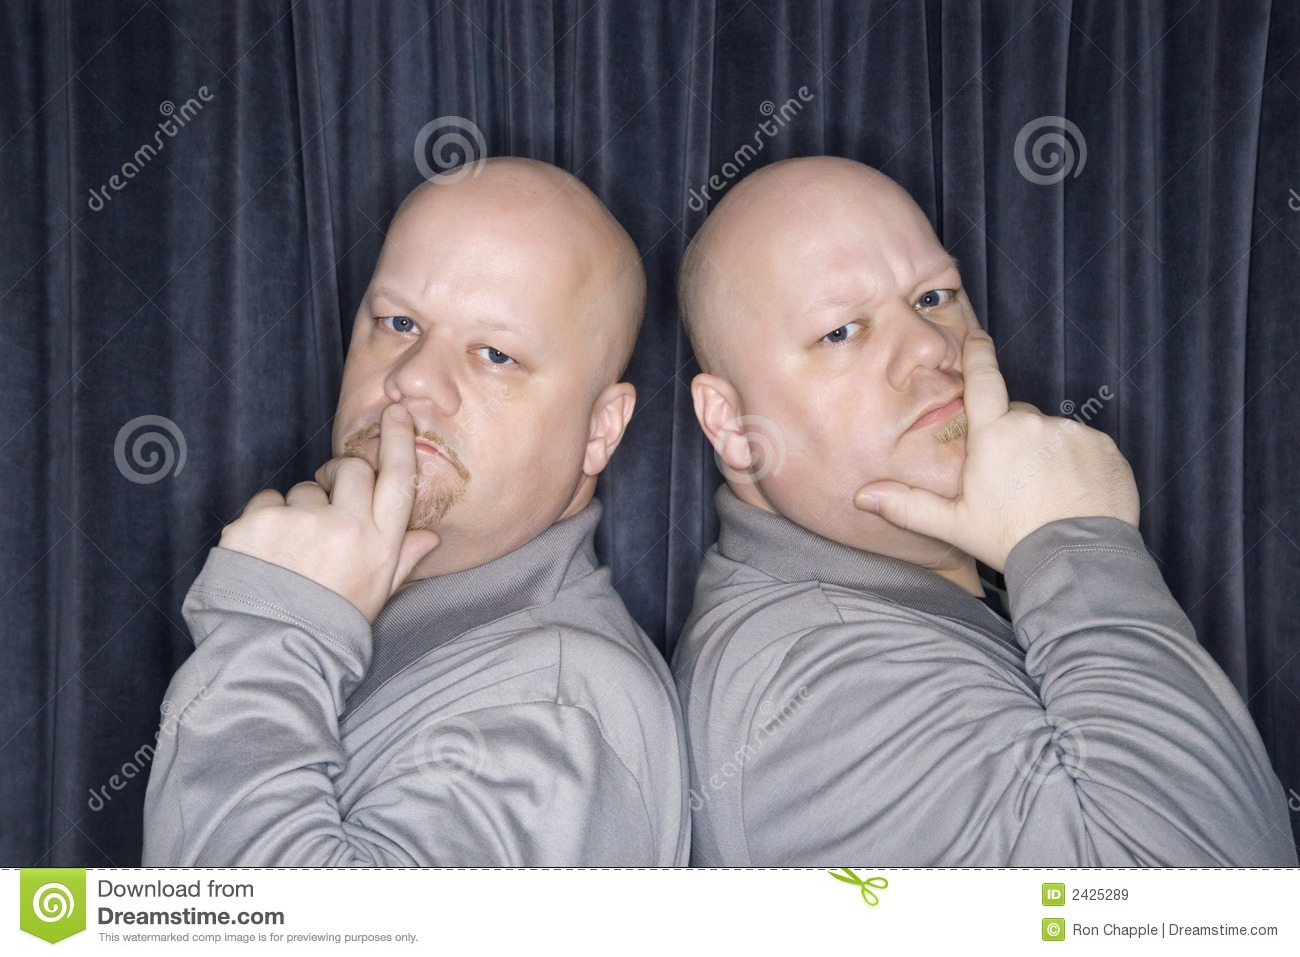 Guy dating identical twins